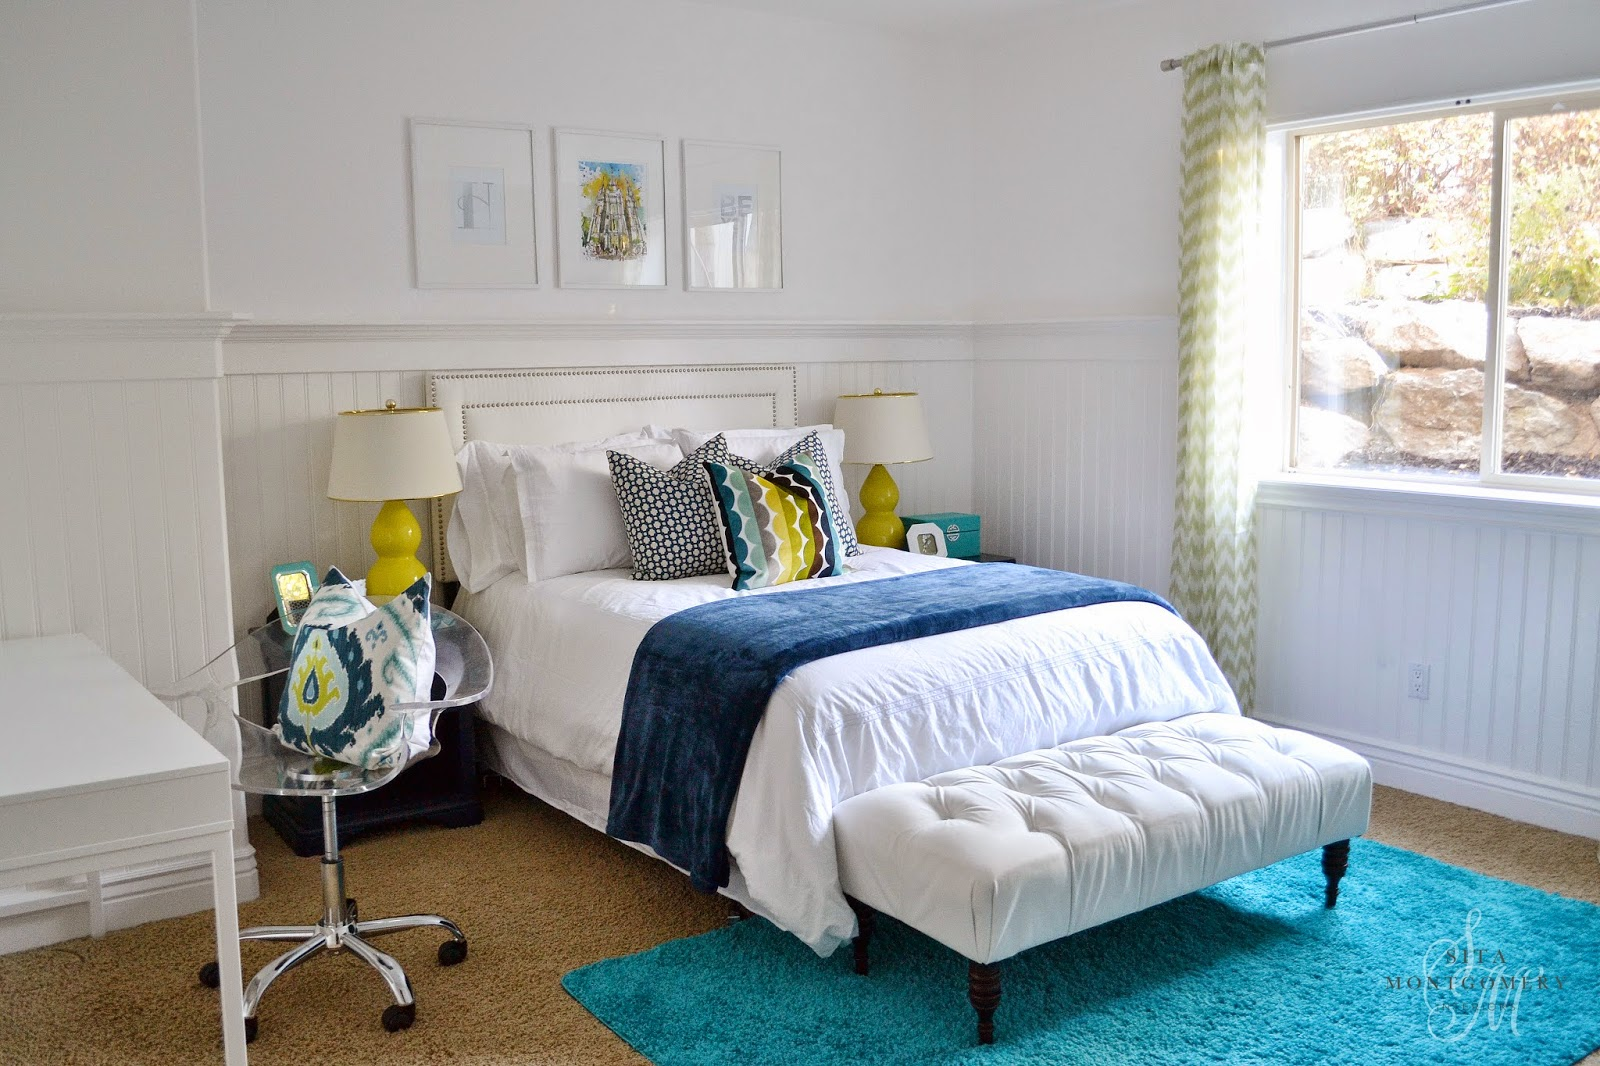 Sita Montgomery Interiors Local Client Project Reveal